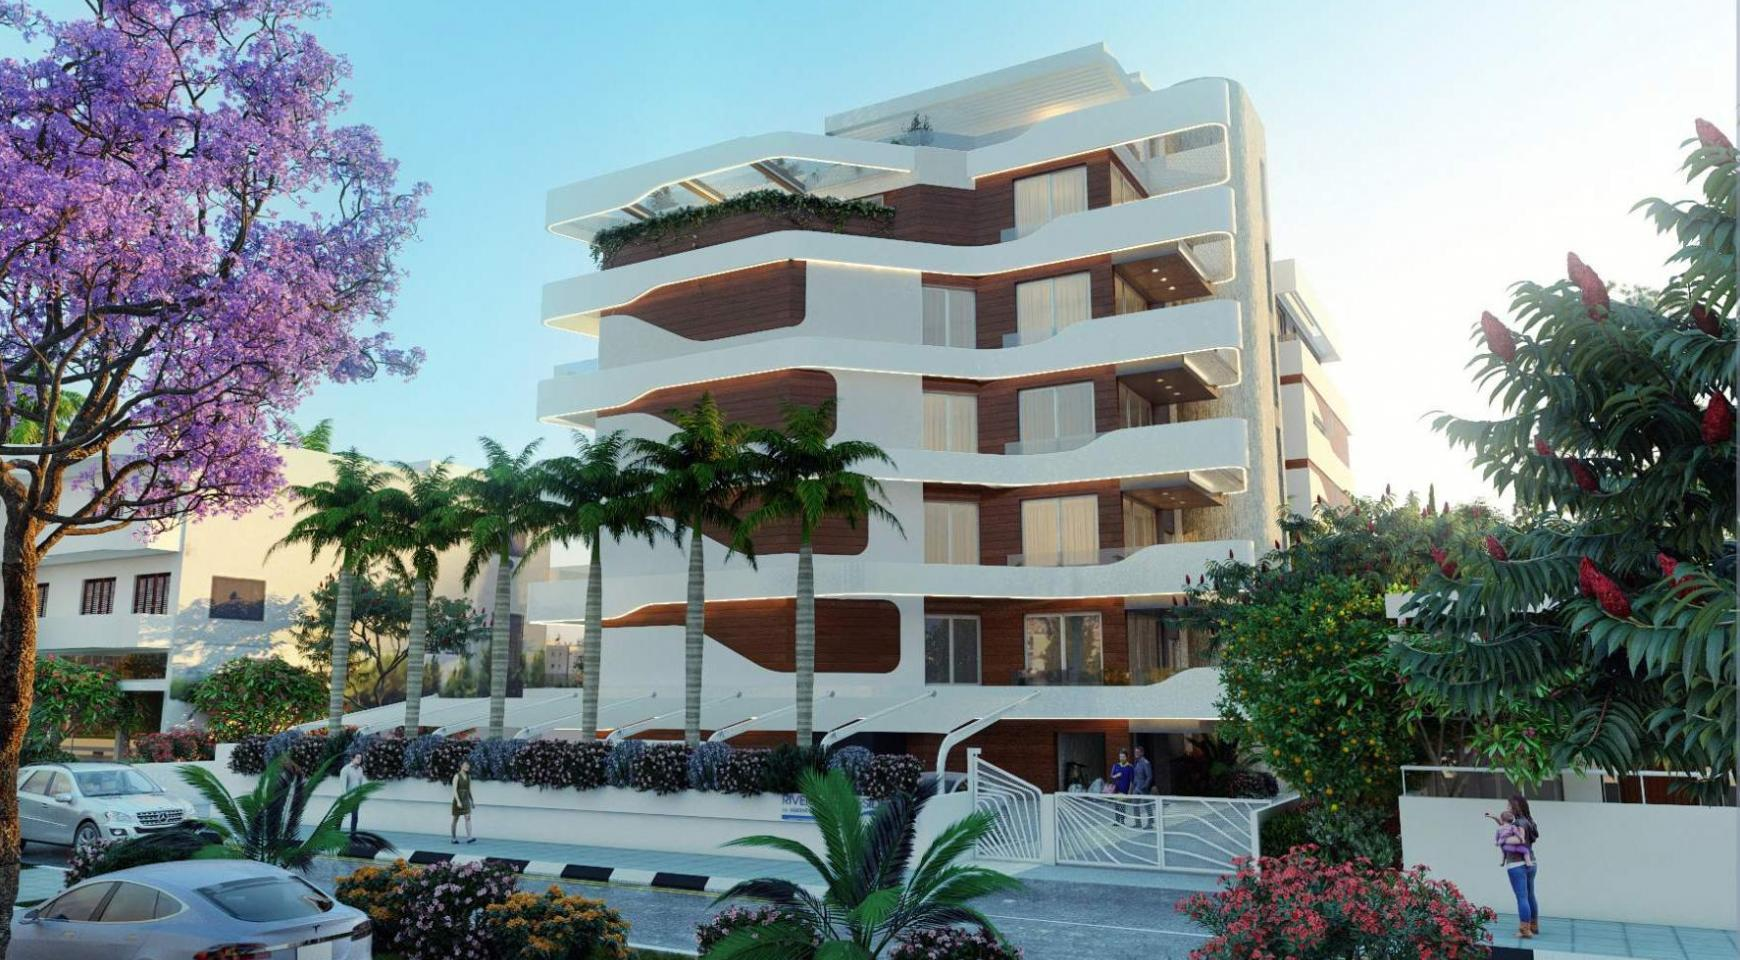 New 3 Bedroom Apartment in a Contemporary Complex near the Sea - 1